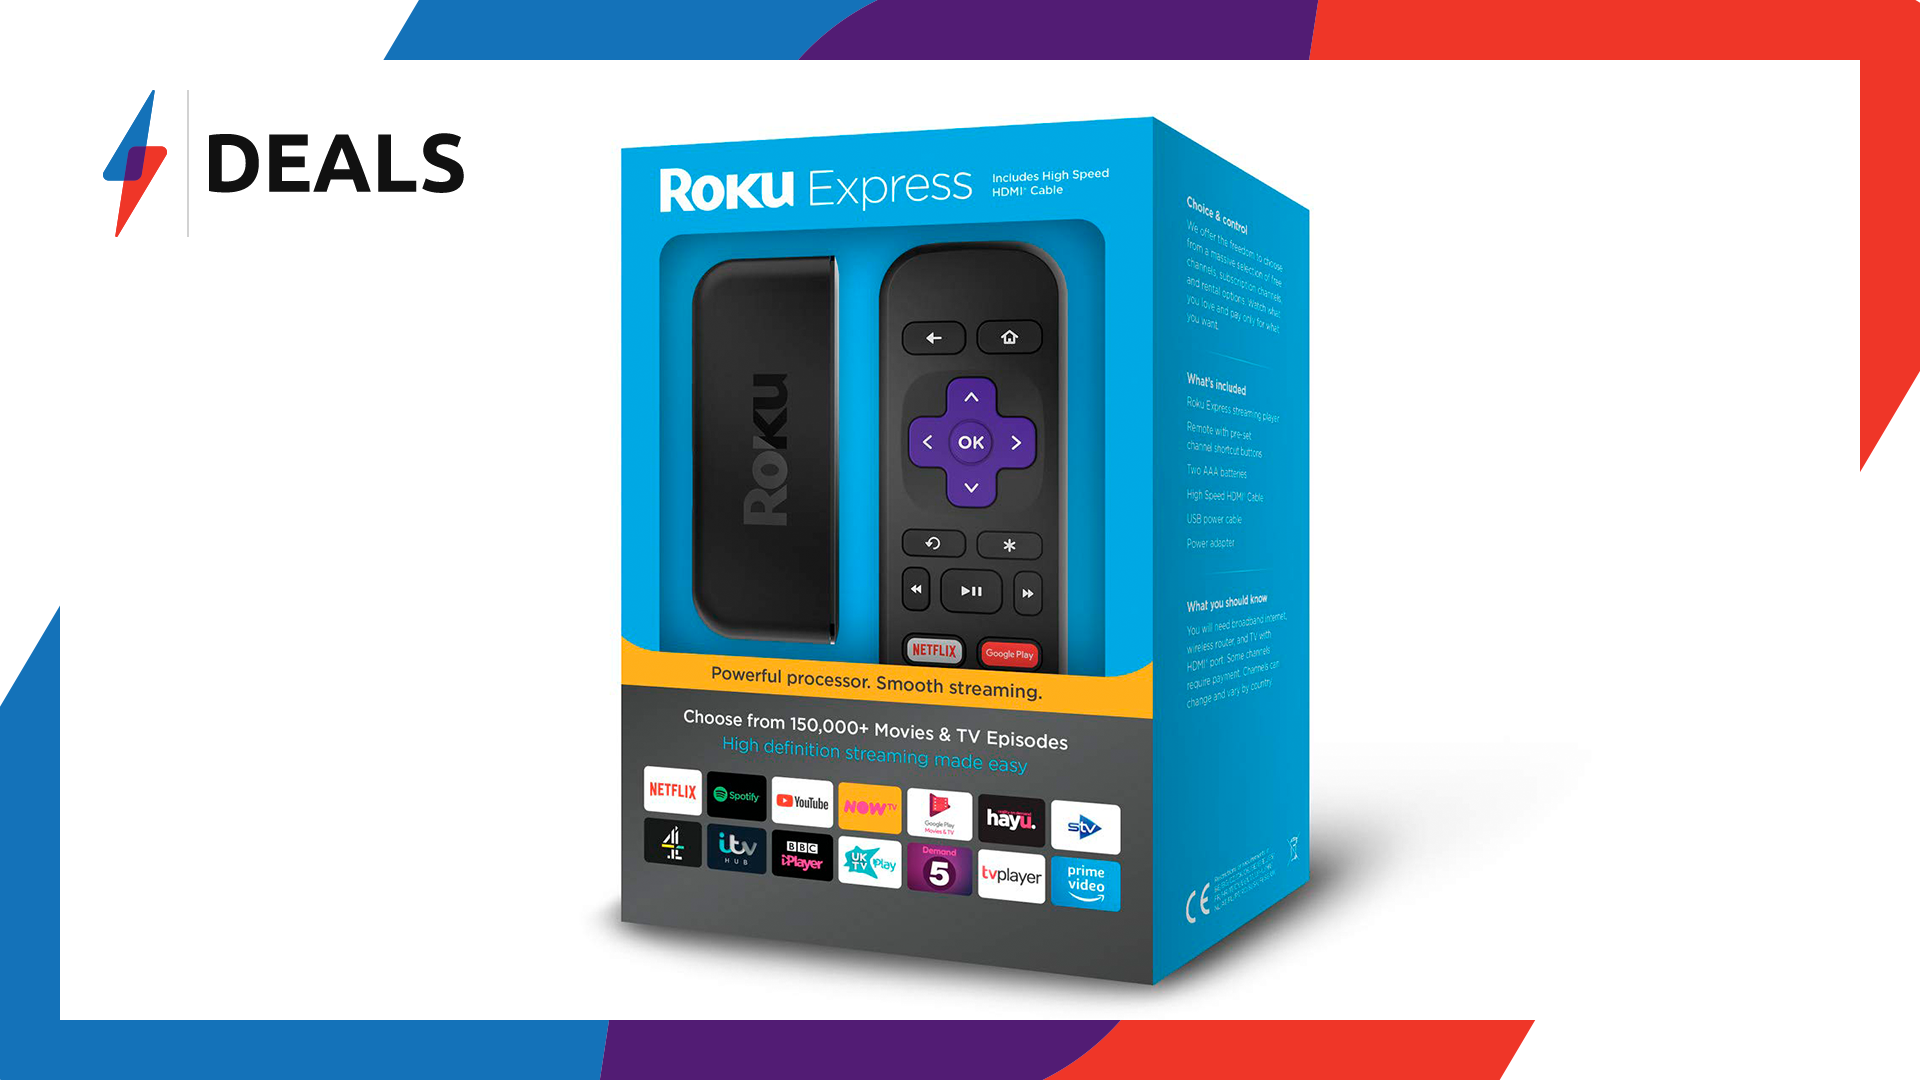 Stream the Roku Channel for less than £20 with this Roku Express deal